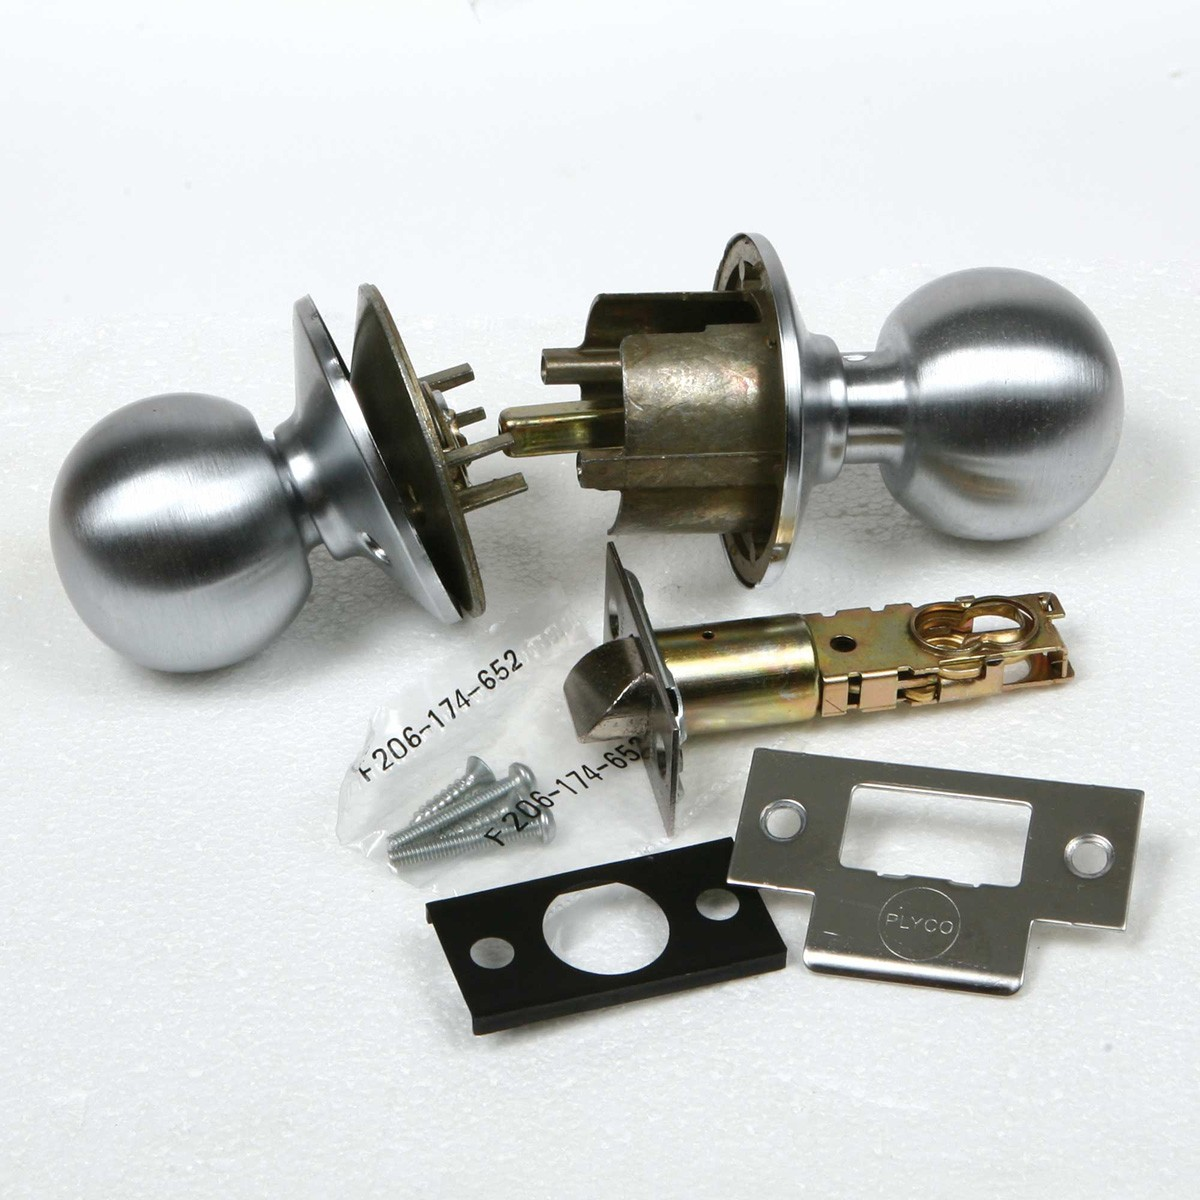 door knobs parts photo - 3